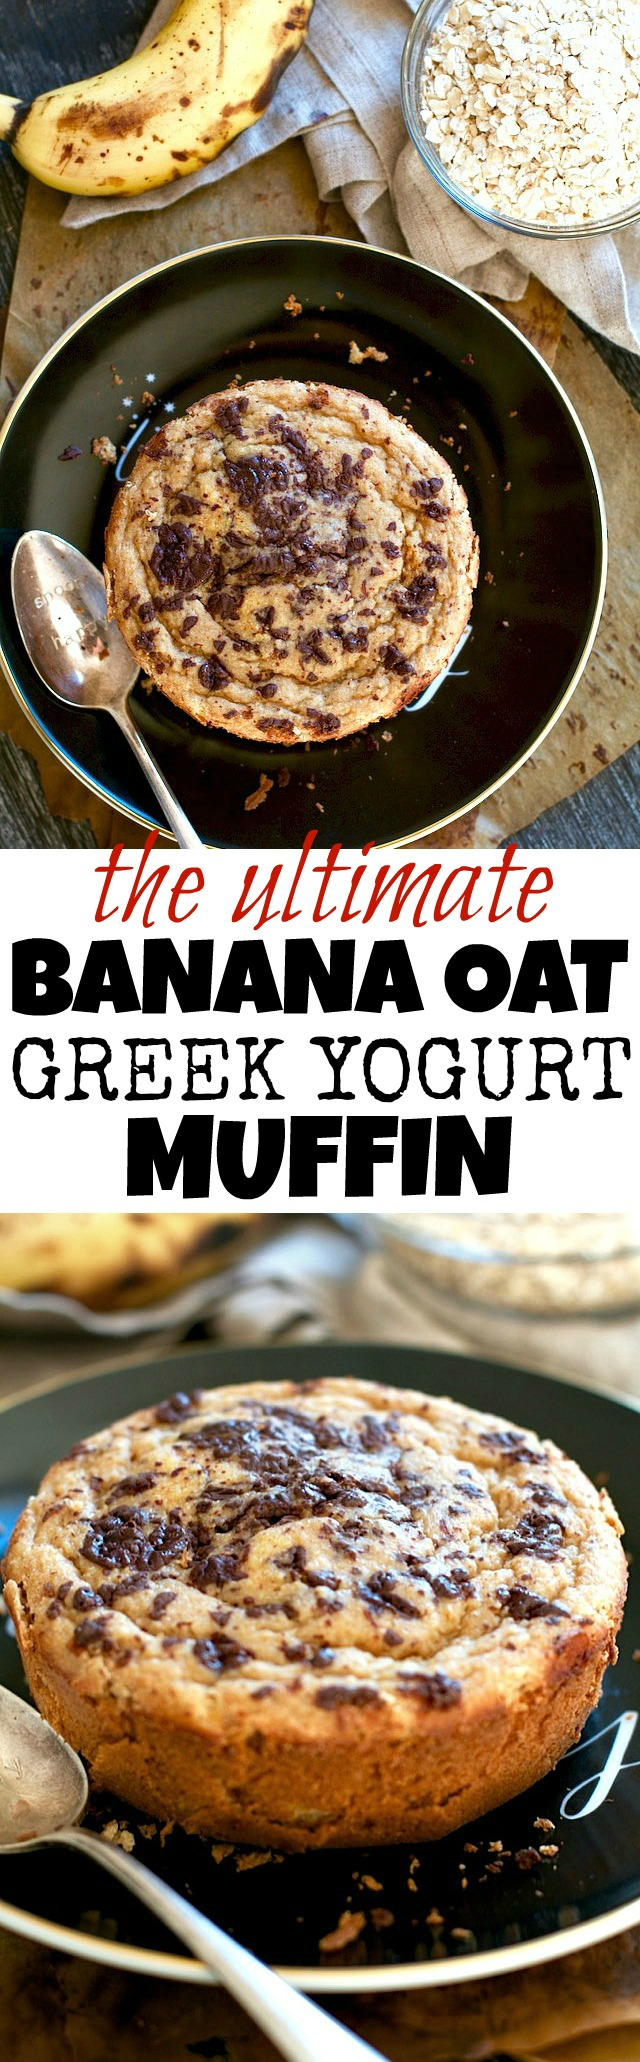 Enjoy a healthy muffin the size of your face with this Ultimate Banana Oat Greek Yogurt Muffin! It's made without any flour or oil, but so soft and tender that you'd never guess it! The perfect gluten-free breakfast or snack! | runningwithspoons.com #healthy #muffin #breakfast #recipe